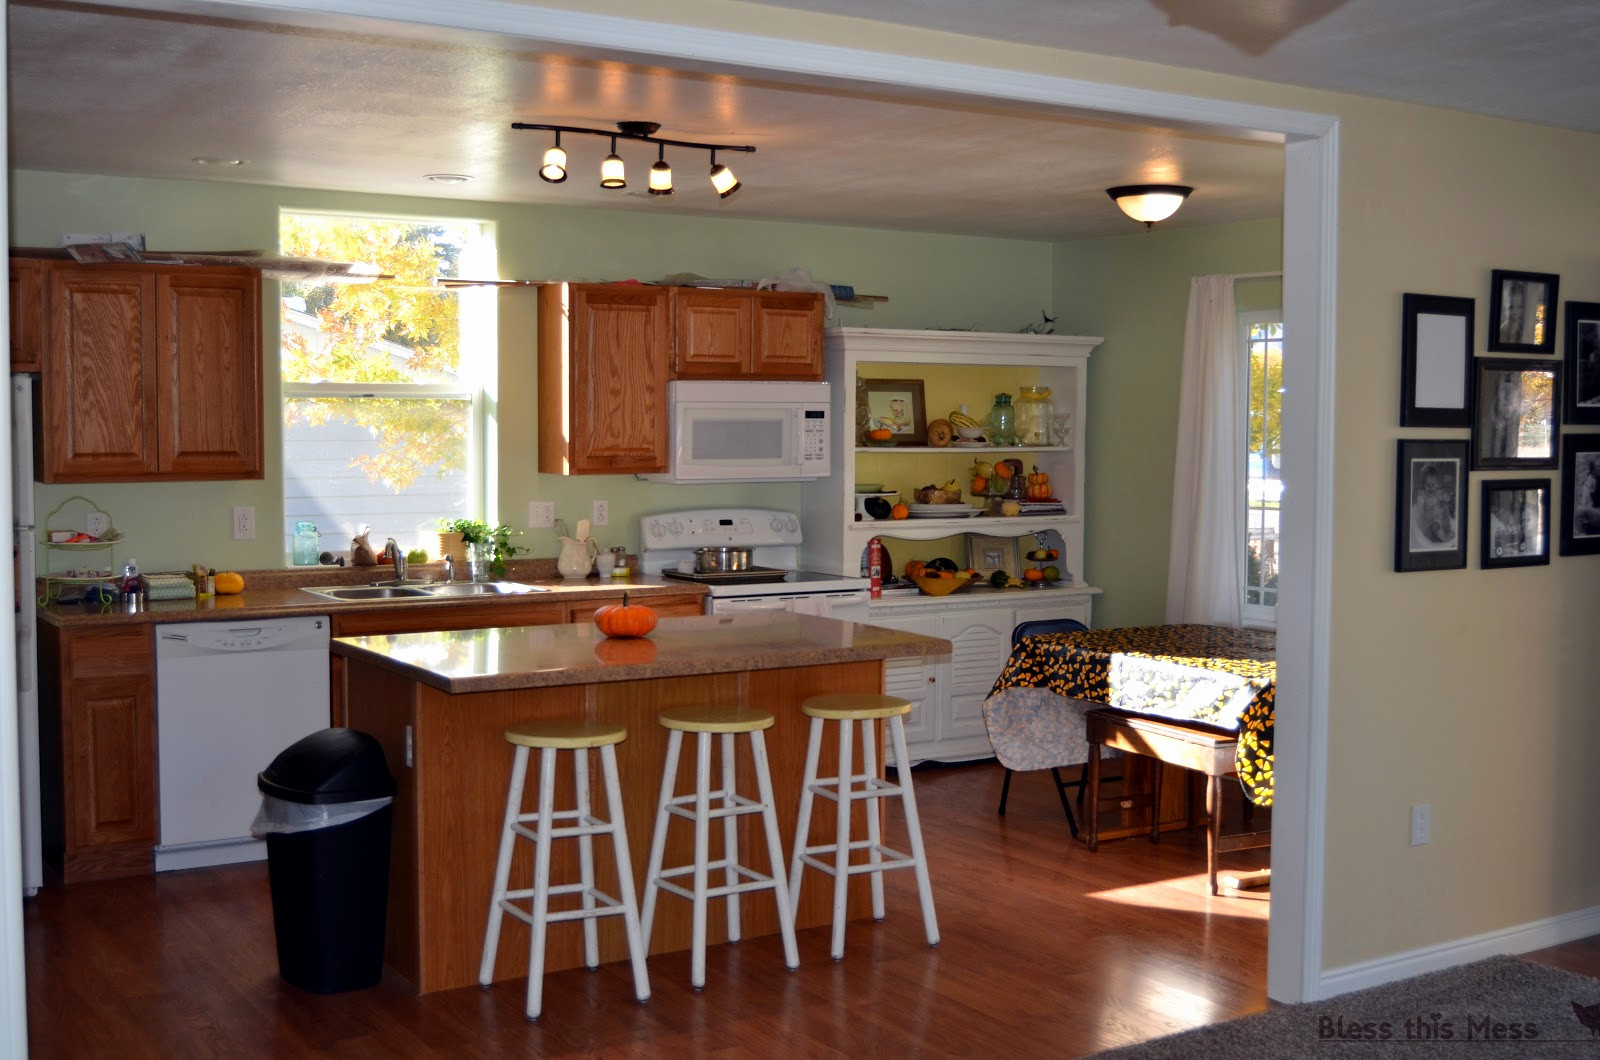 how much does labor cost to install hardwood floors of 65 best of gallery of average kitchen cabinet costs news kitchen model regarding average kitchen cabinet costs inspirational cabinet cost kitchen cabinets cabinet new installed average per